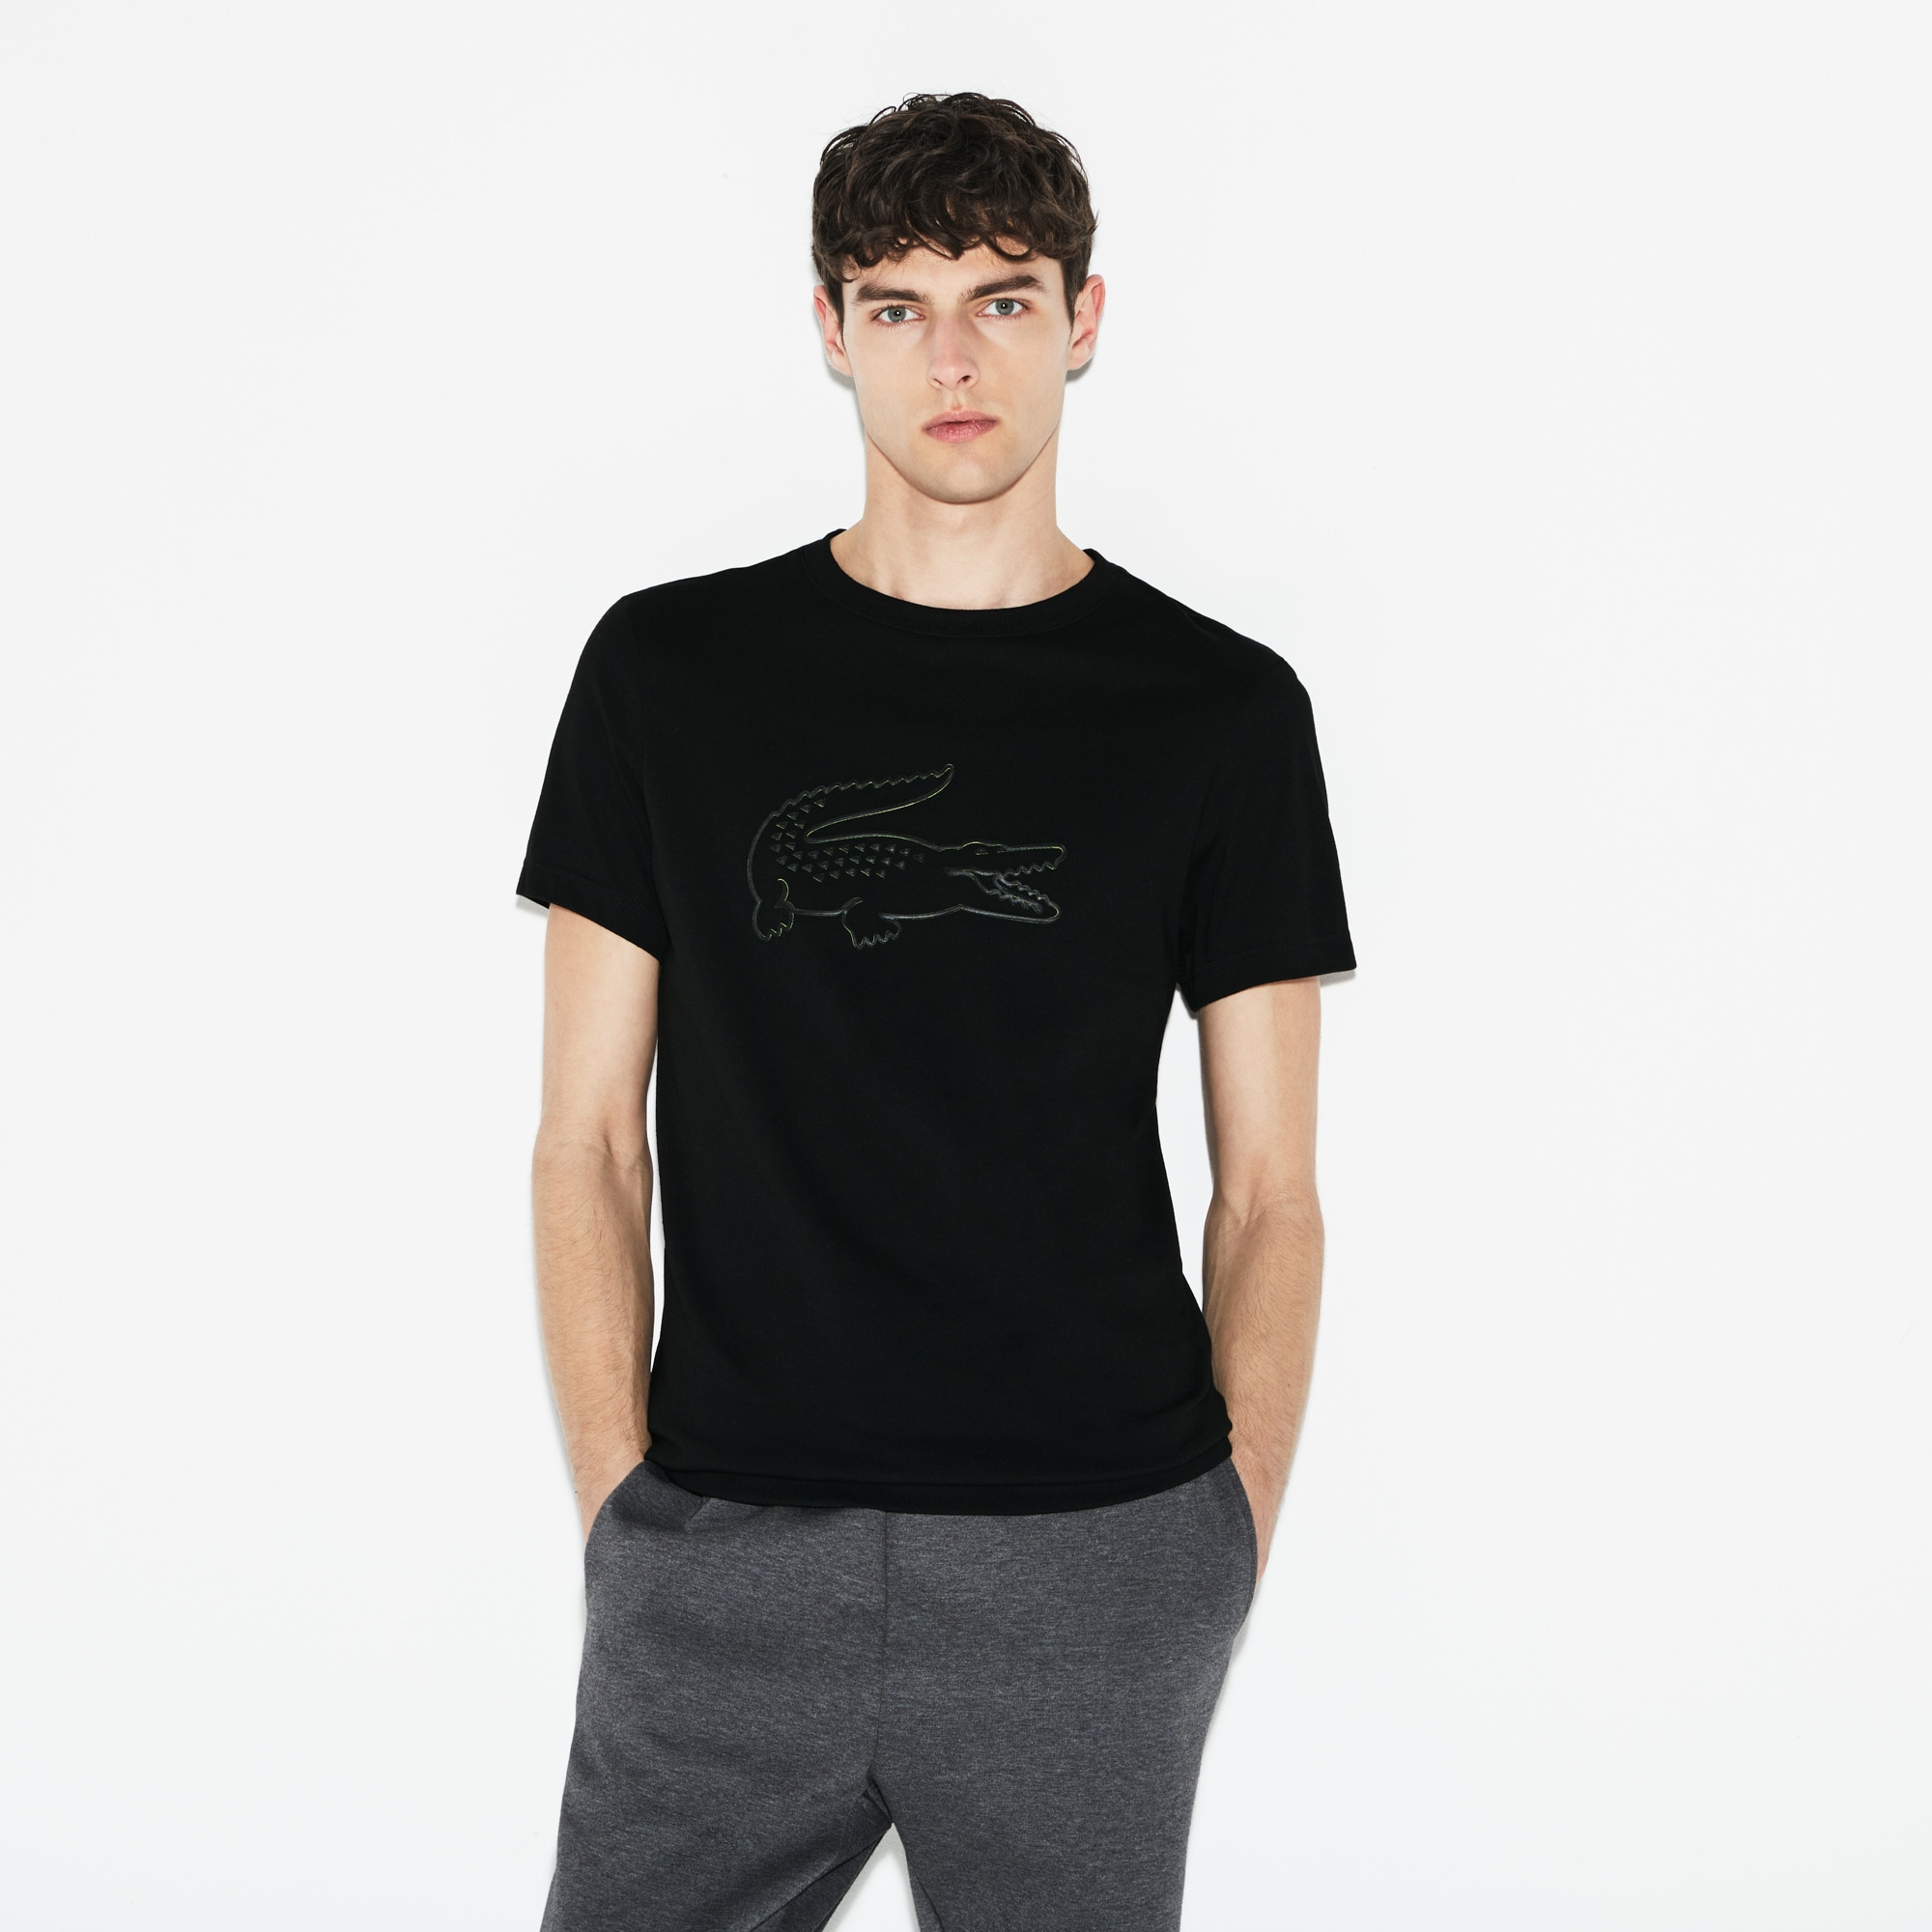 Men's Lacoste SPORT Oversized Croc Tech Jersey Tennis T-shirt